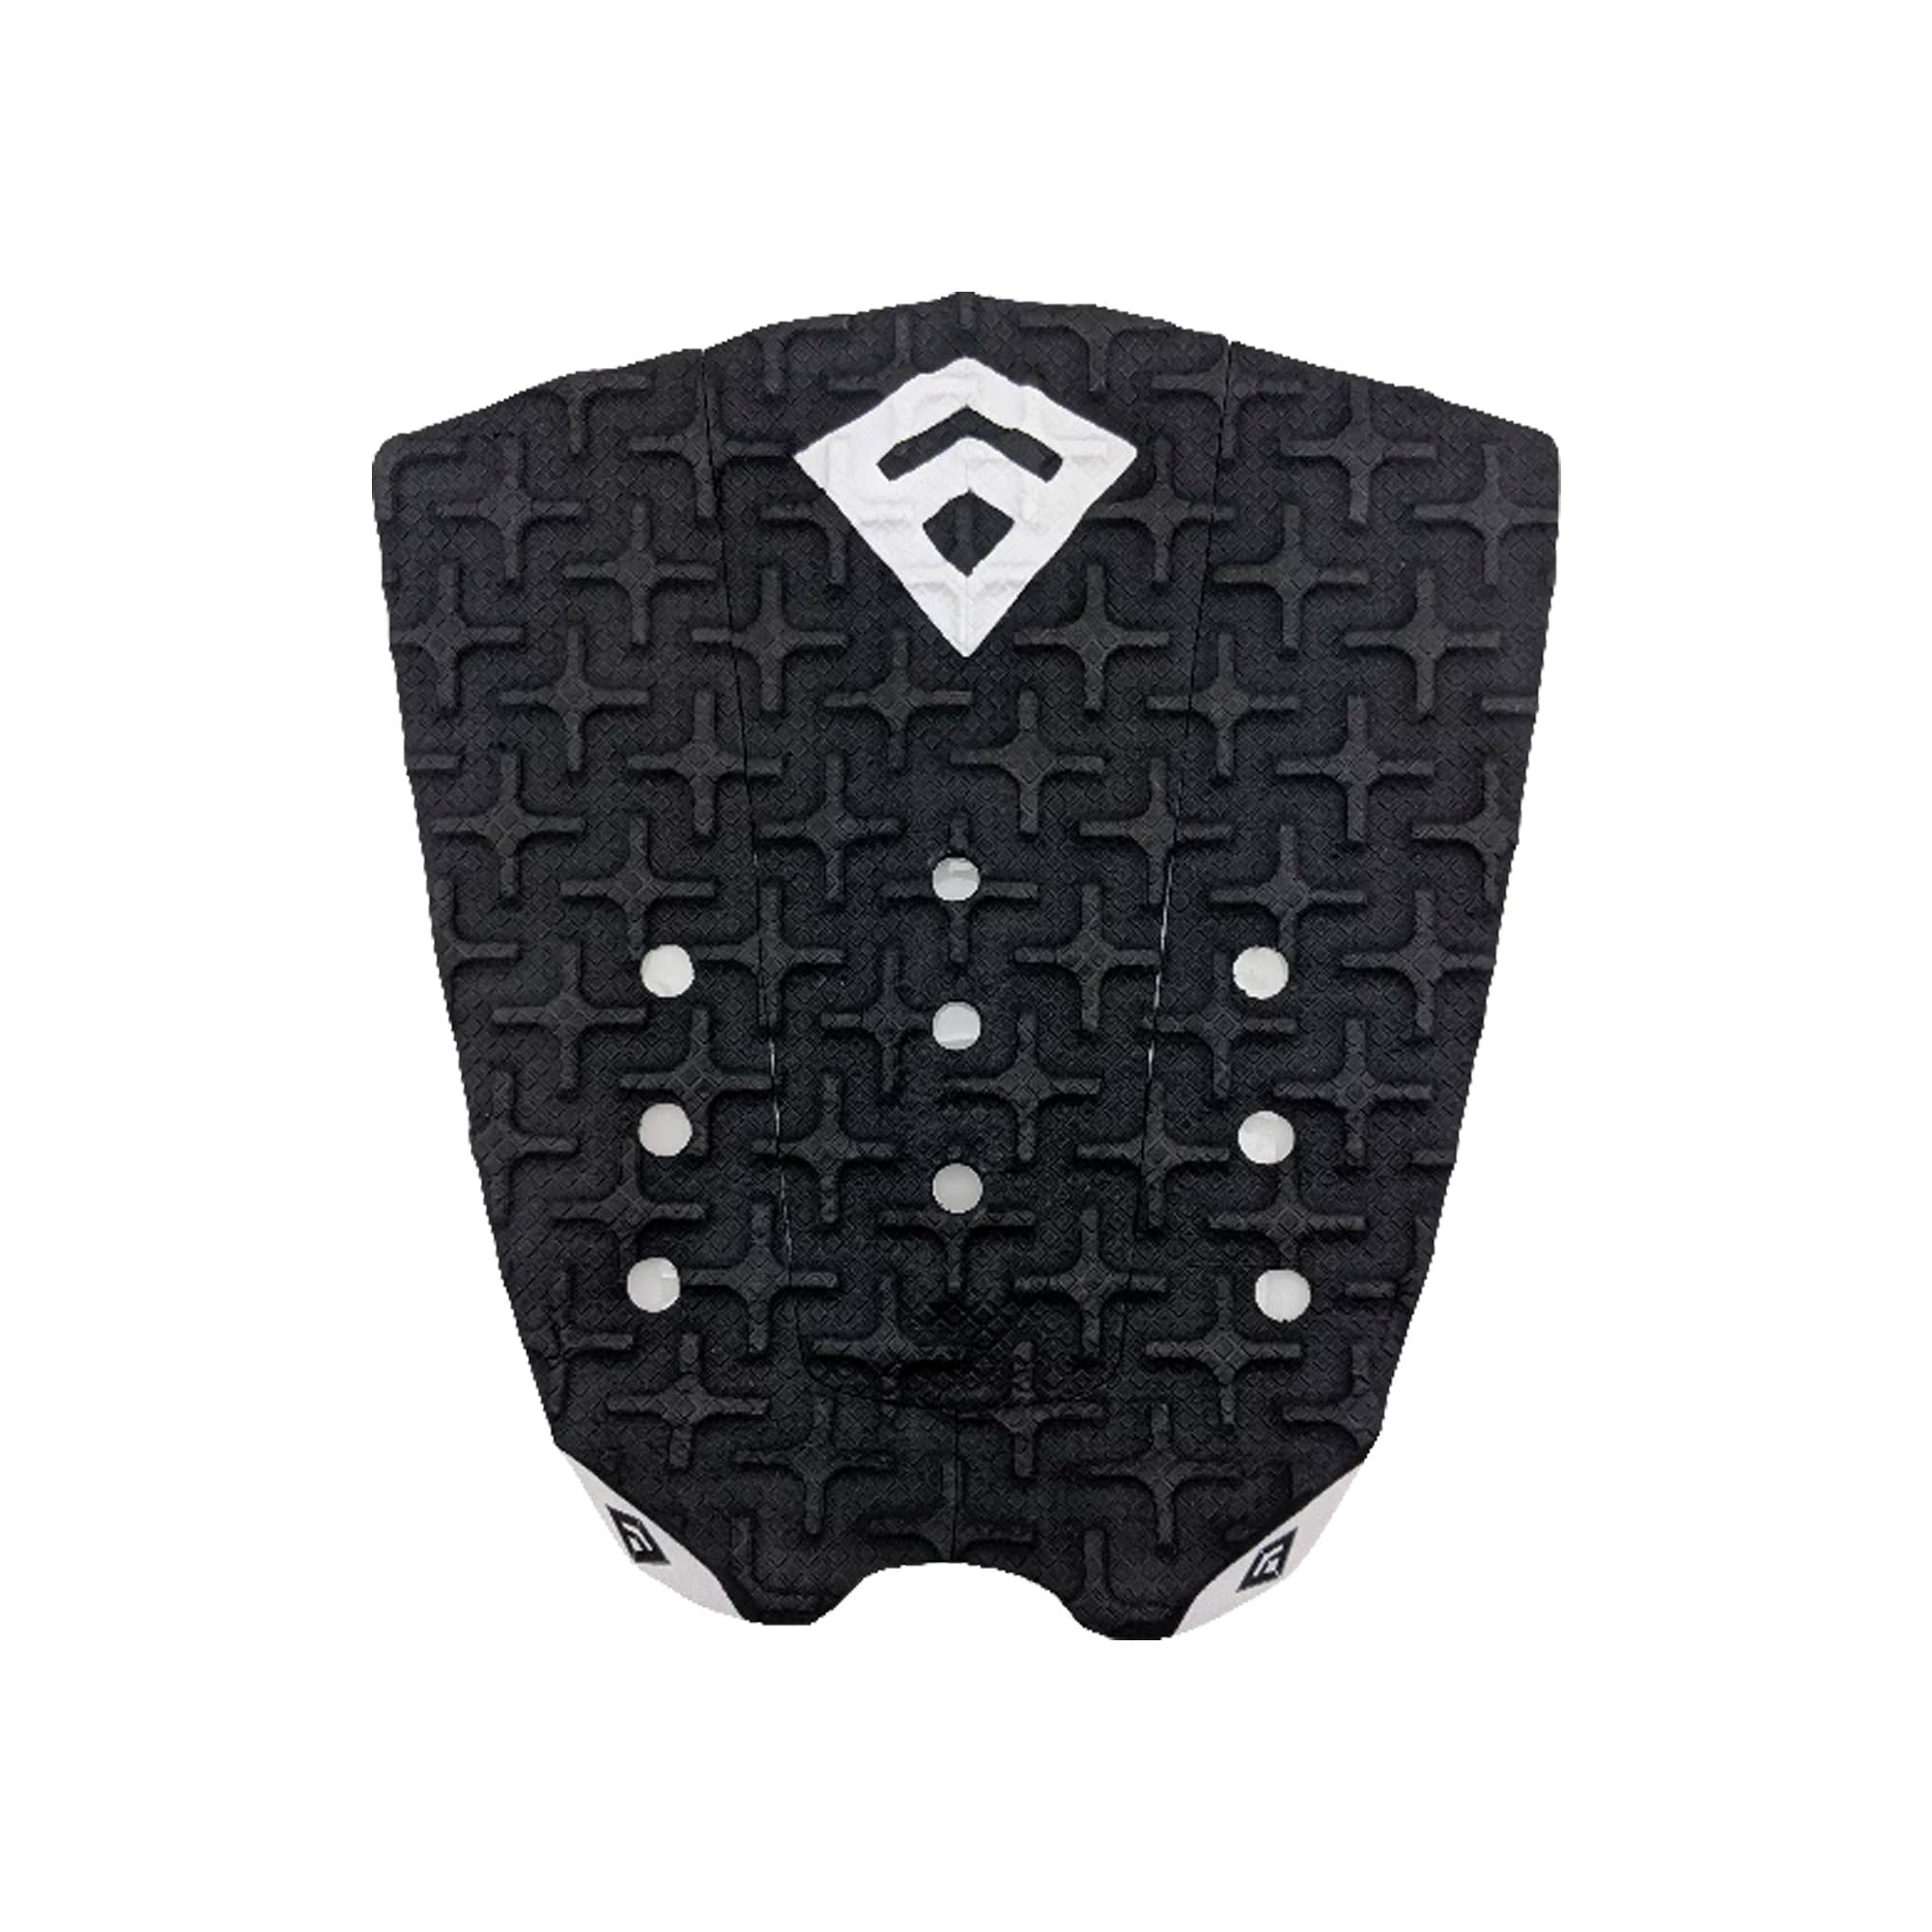 Freak Phantom Flare Traction Pad - Black/White